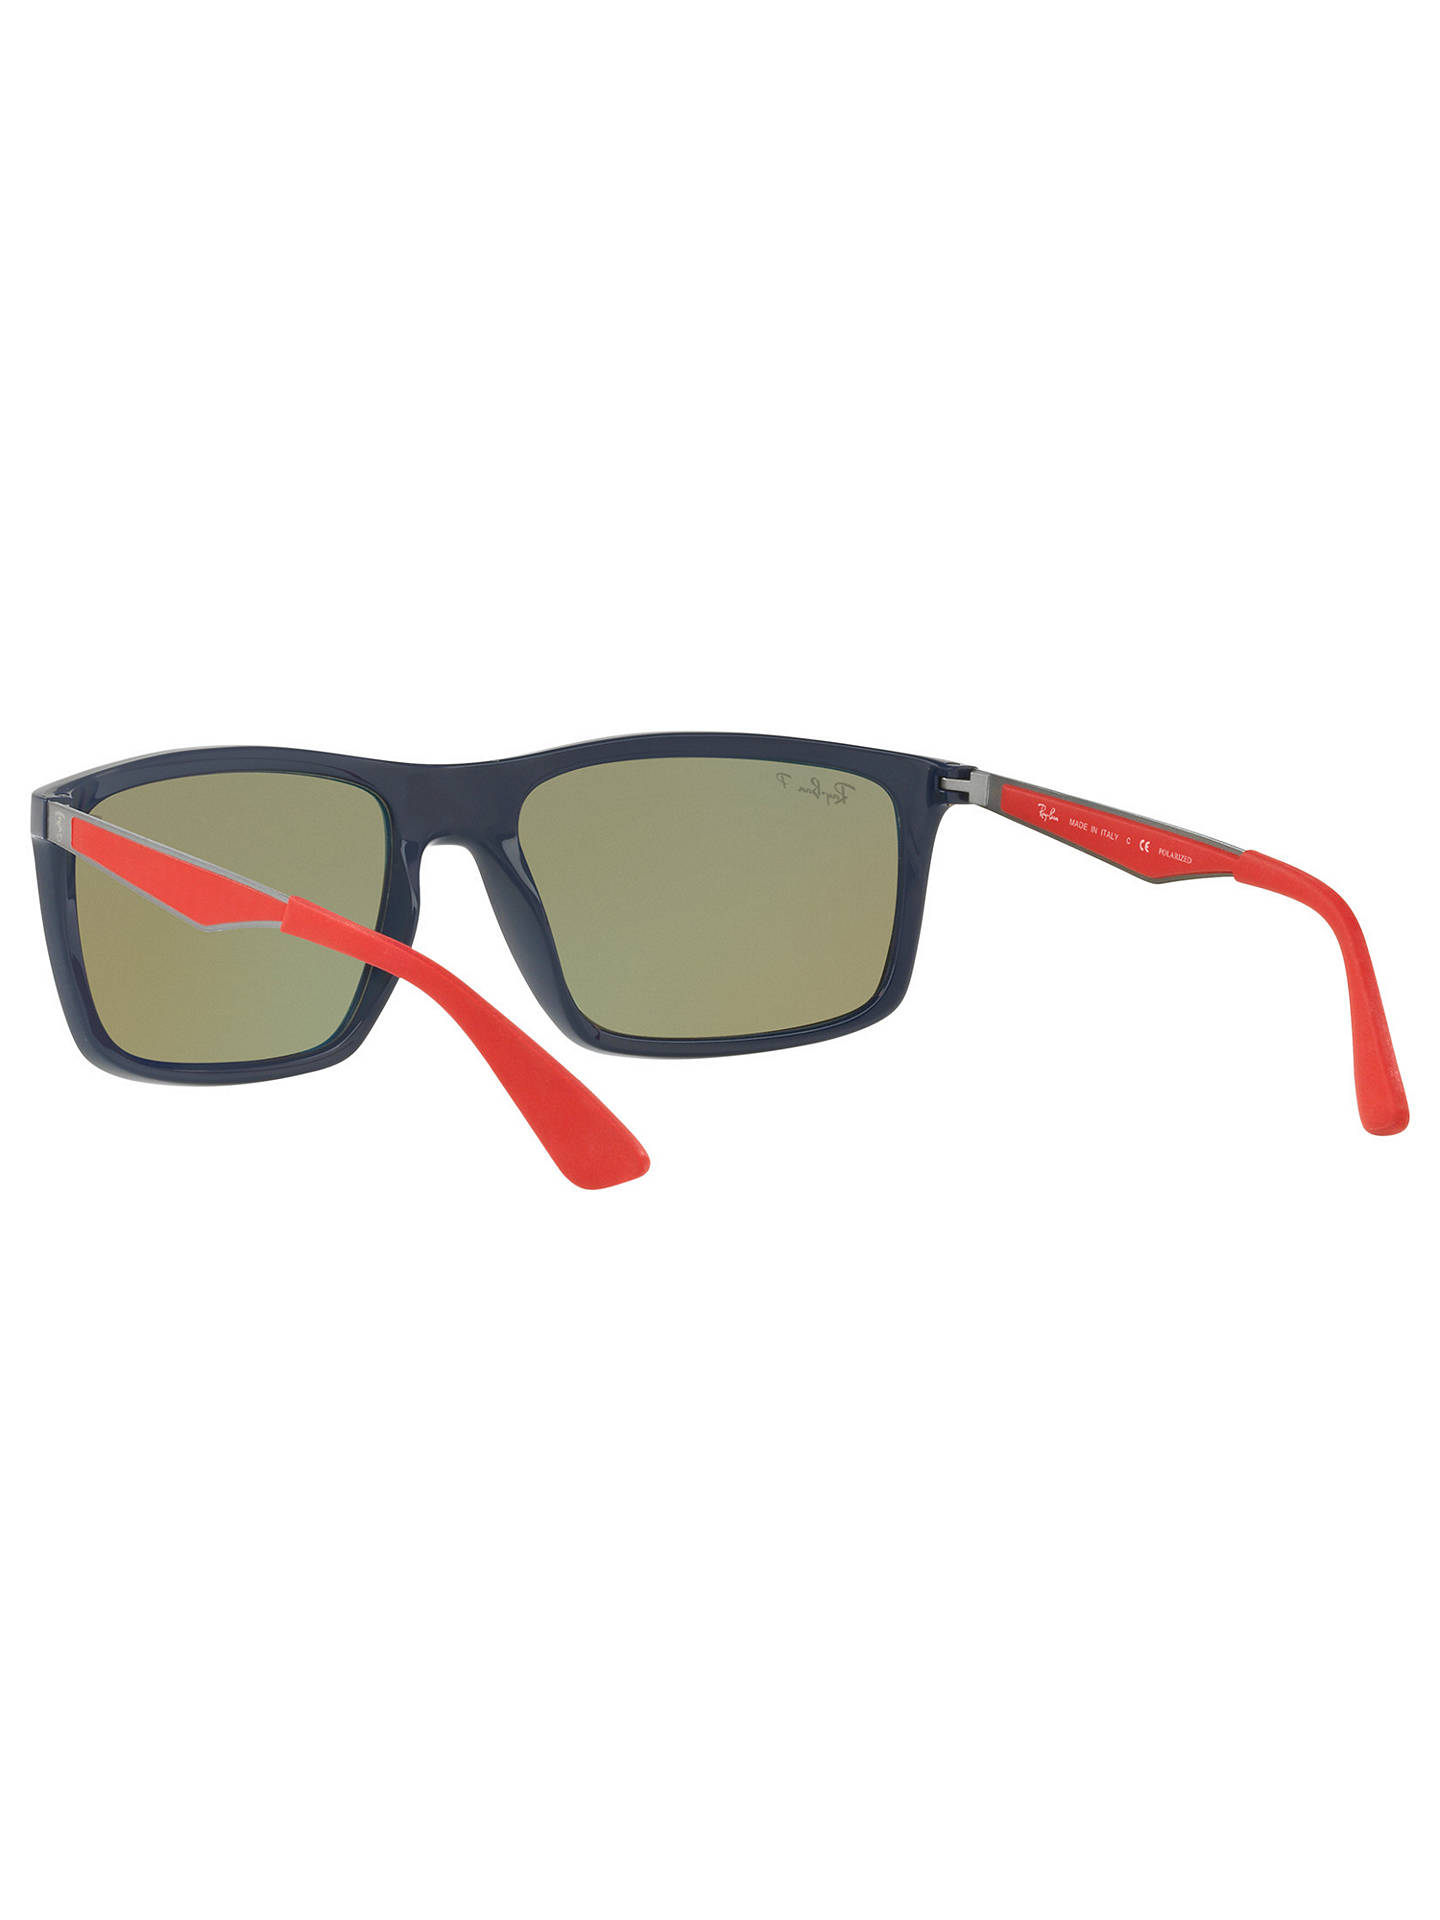 BuyRay-Ban RB4228 Men's Polarised Rectangular Sunglasses, Grey/Blue Online at johnlewis.com